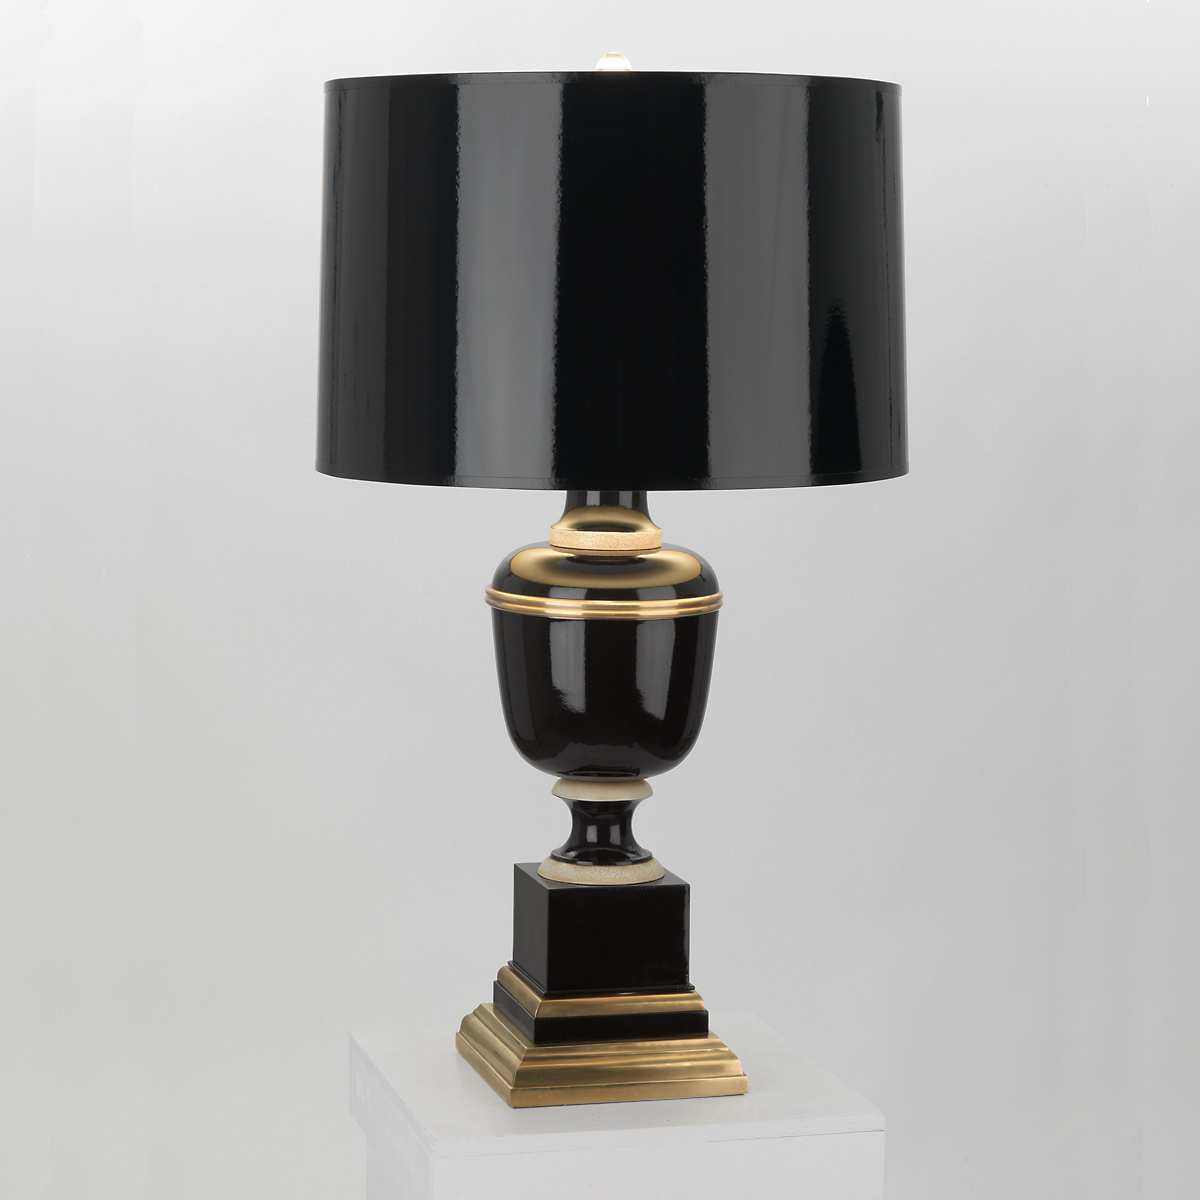 Mary McDonald Annika Table Lamp